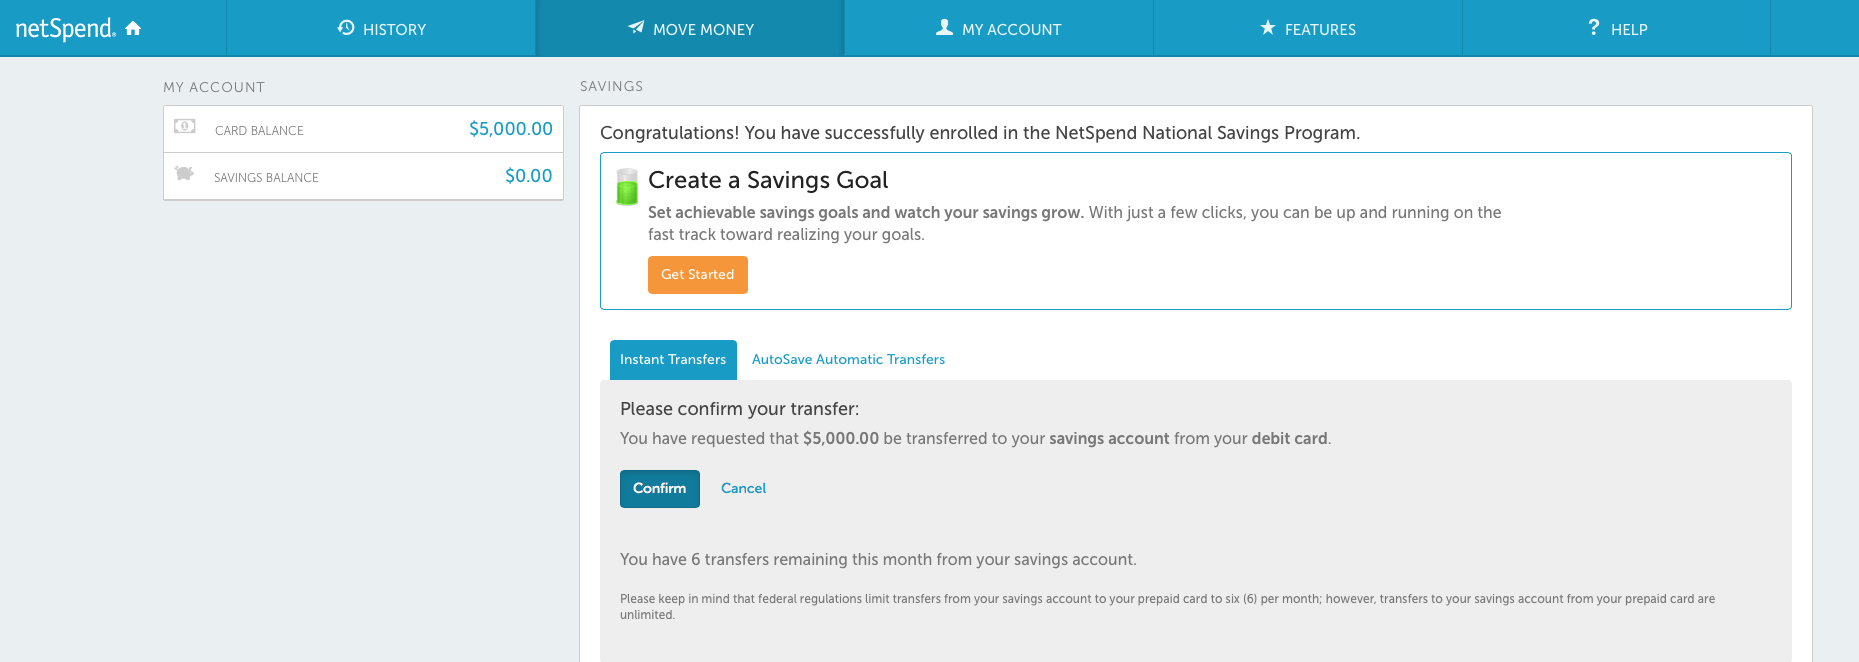 netspend card 5% apy savings account review — my money blog